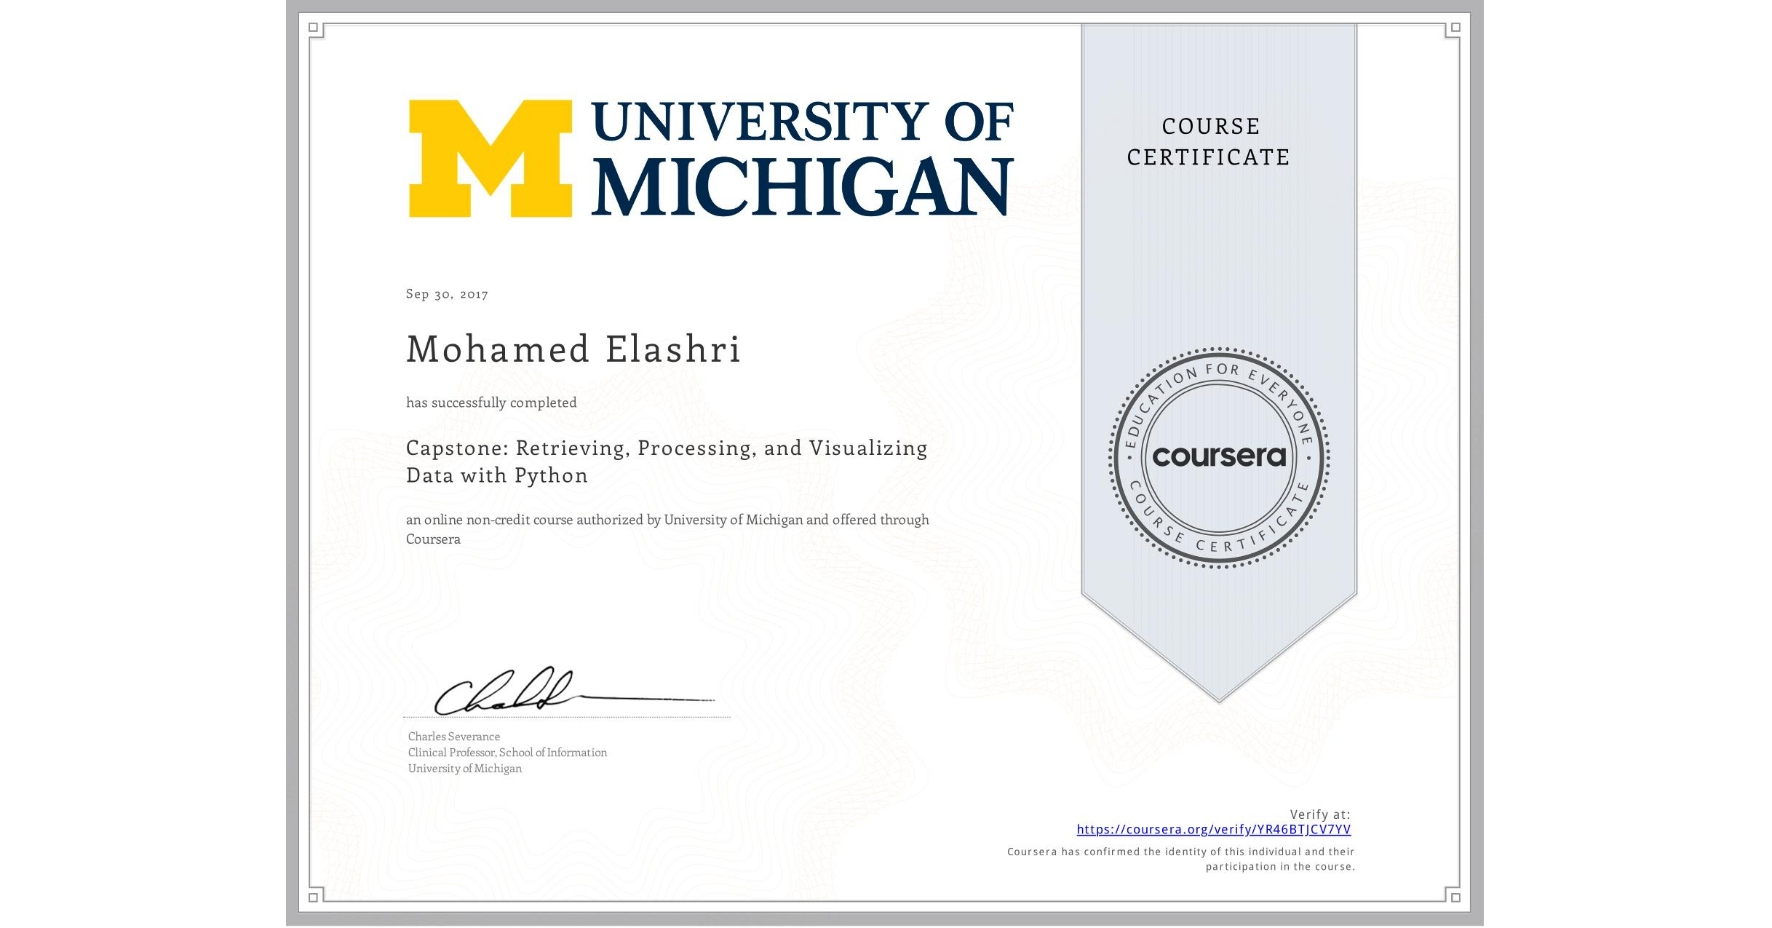 View certificate for Mohamed Elashri, Capstone: Retrieving, Processing, and Visualizing Data with Python, an online non-credit course authorized by University of Michigan and offered through Coursera